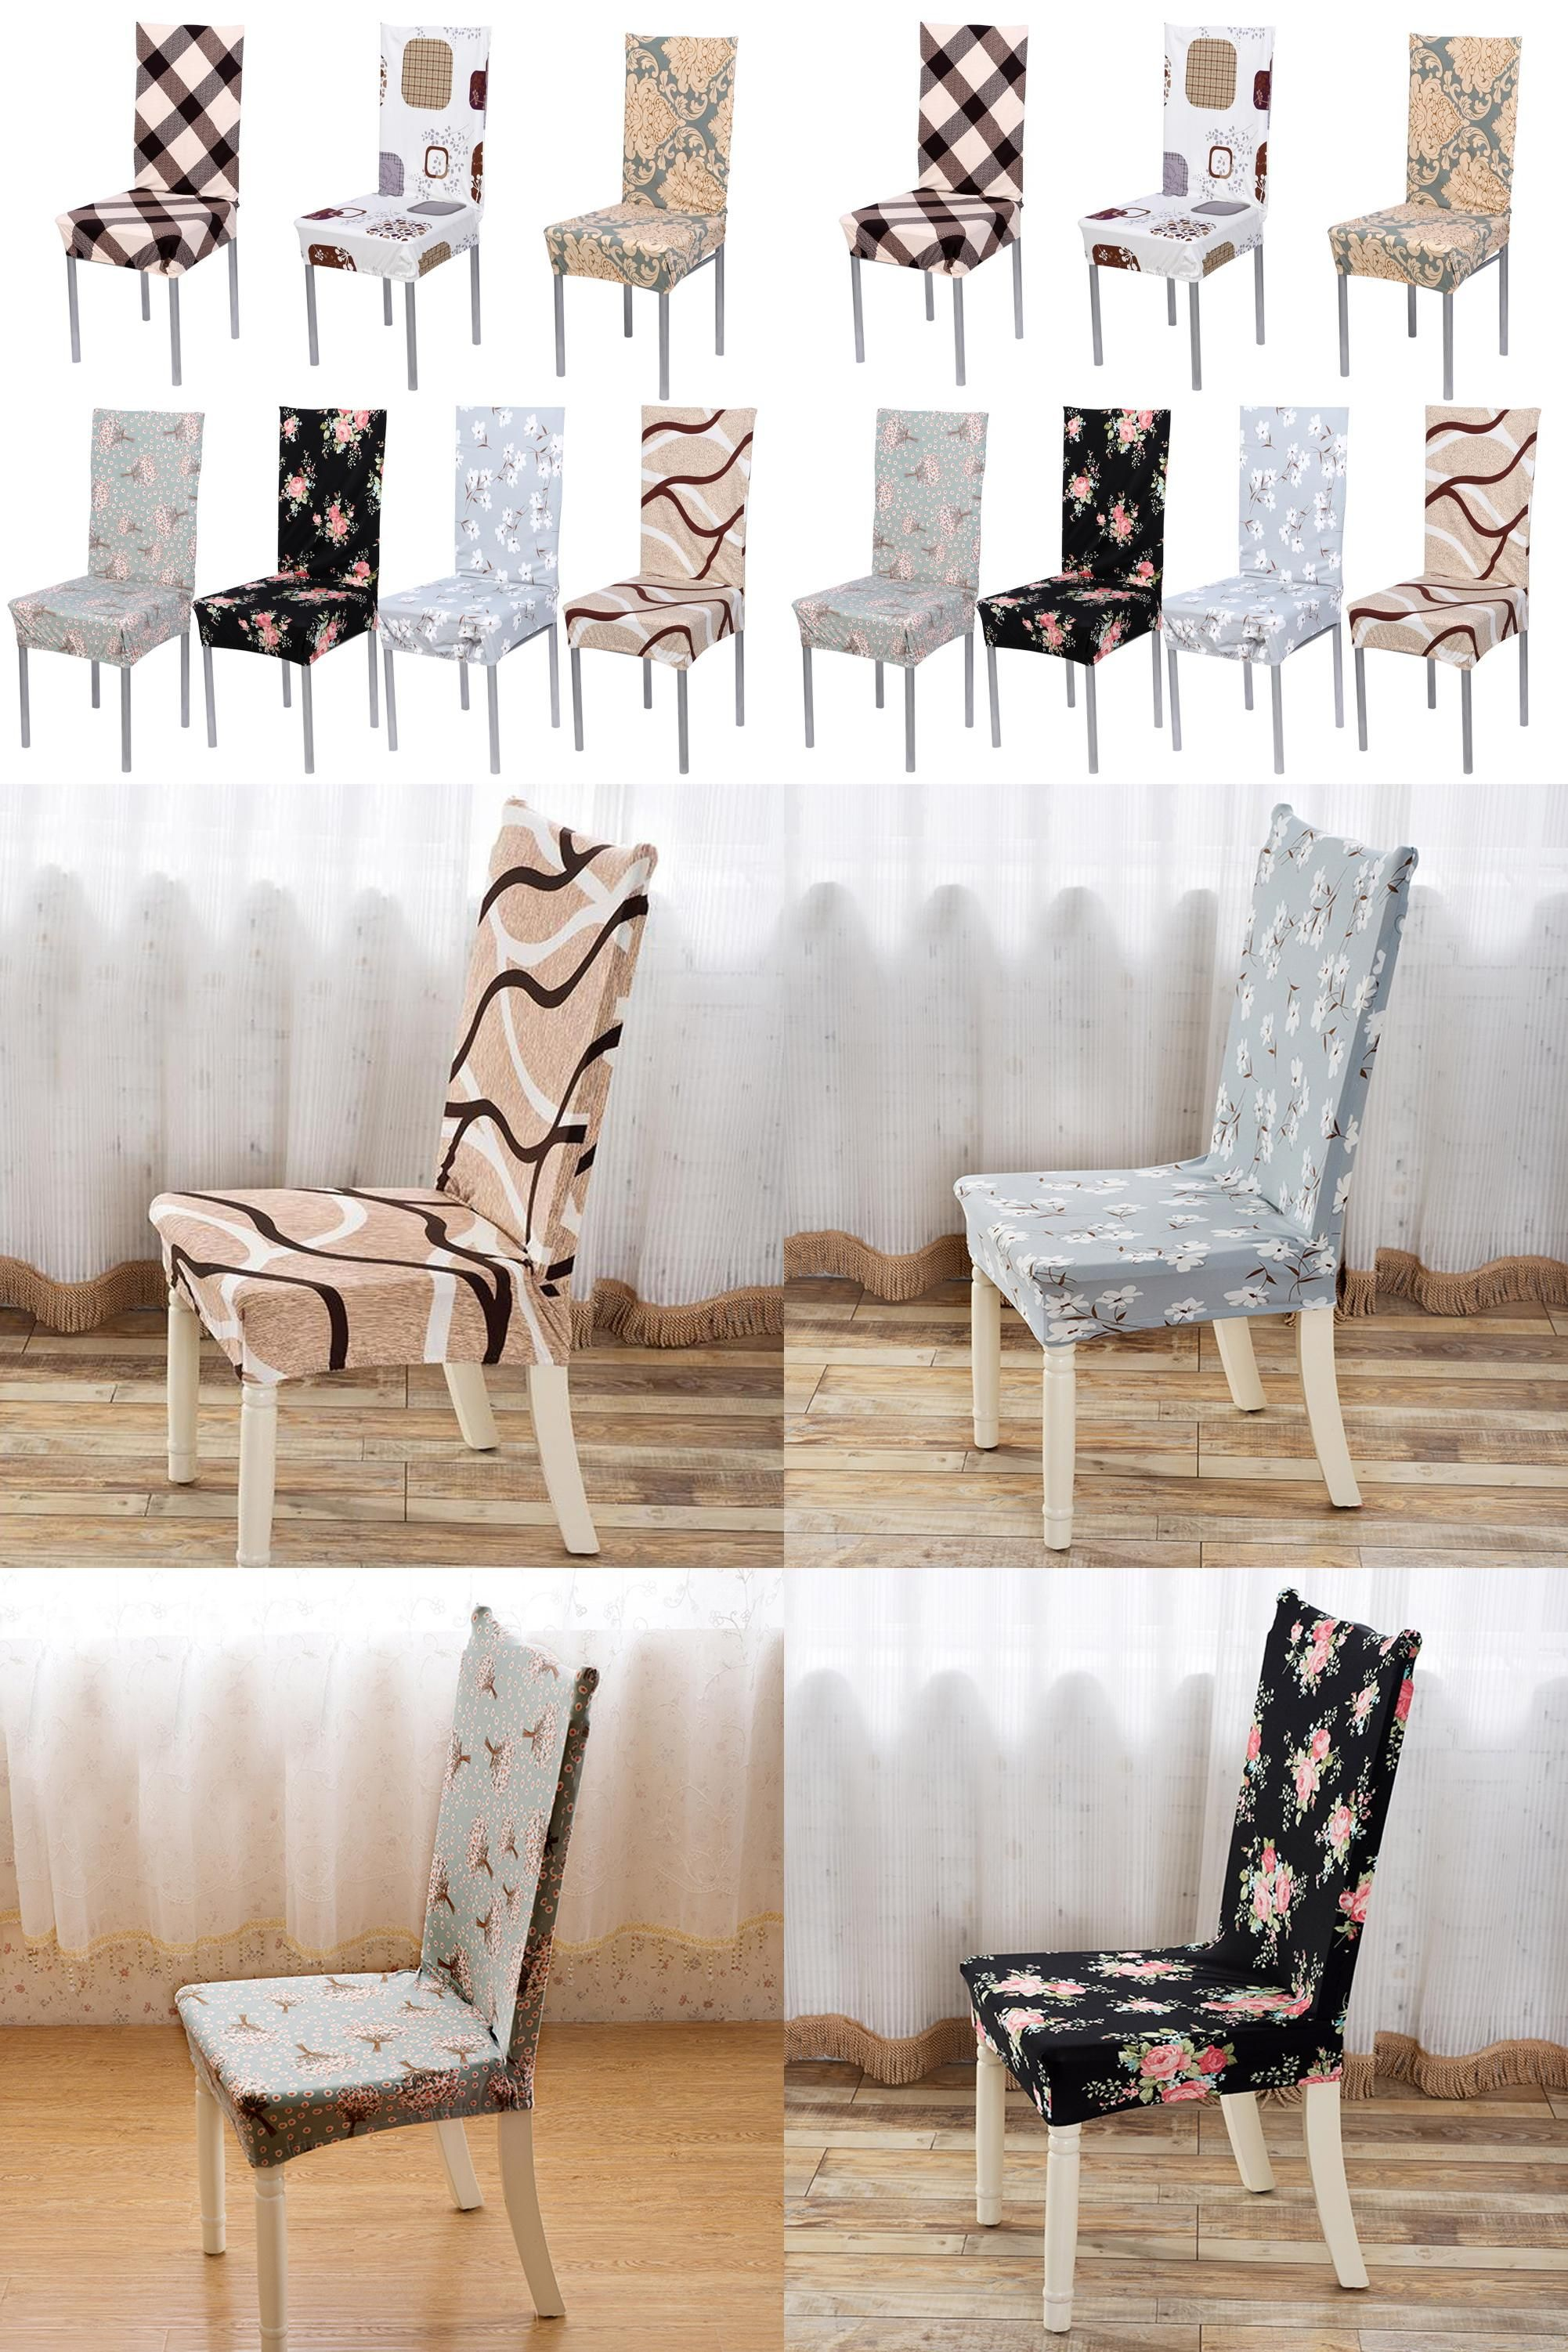 Visit to Buy Removable Chair Cover Stretch Elastic Slipcovers